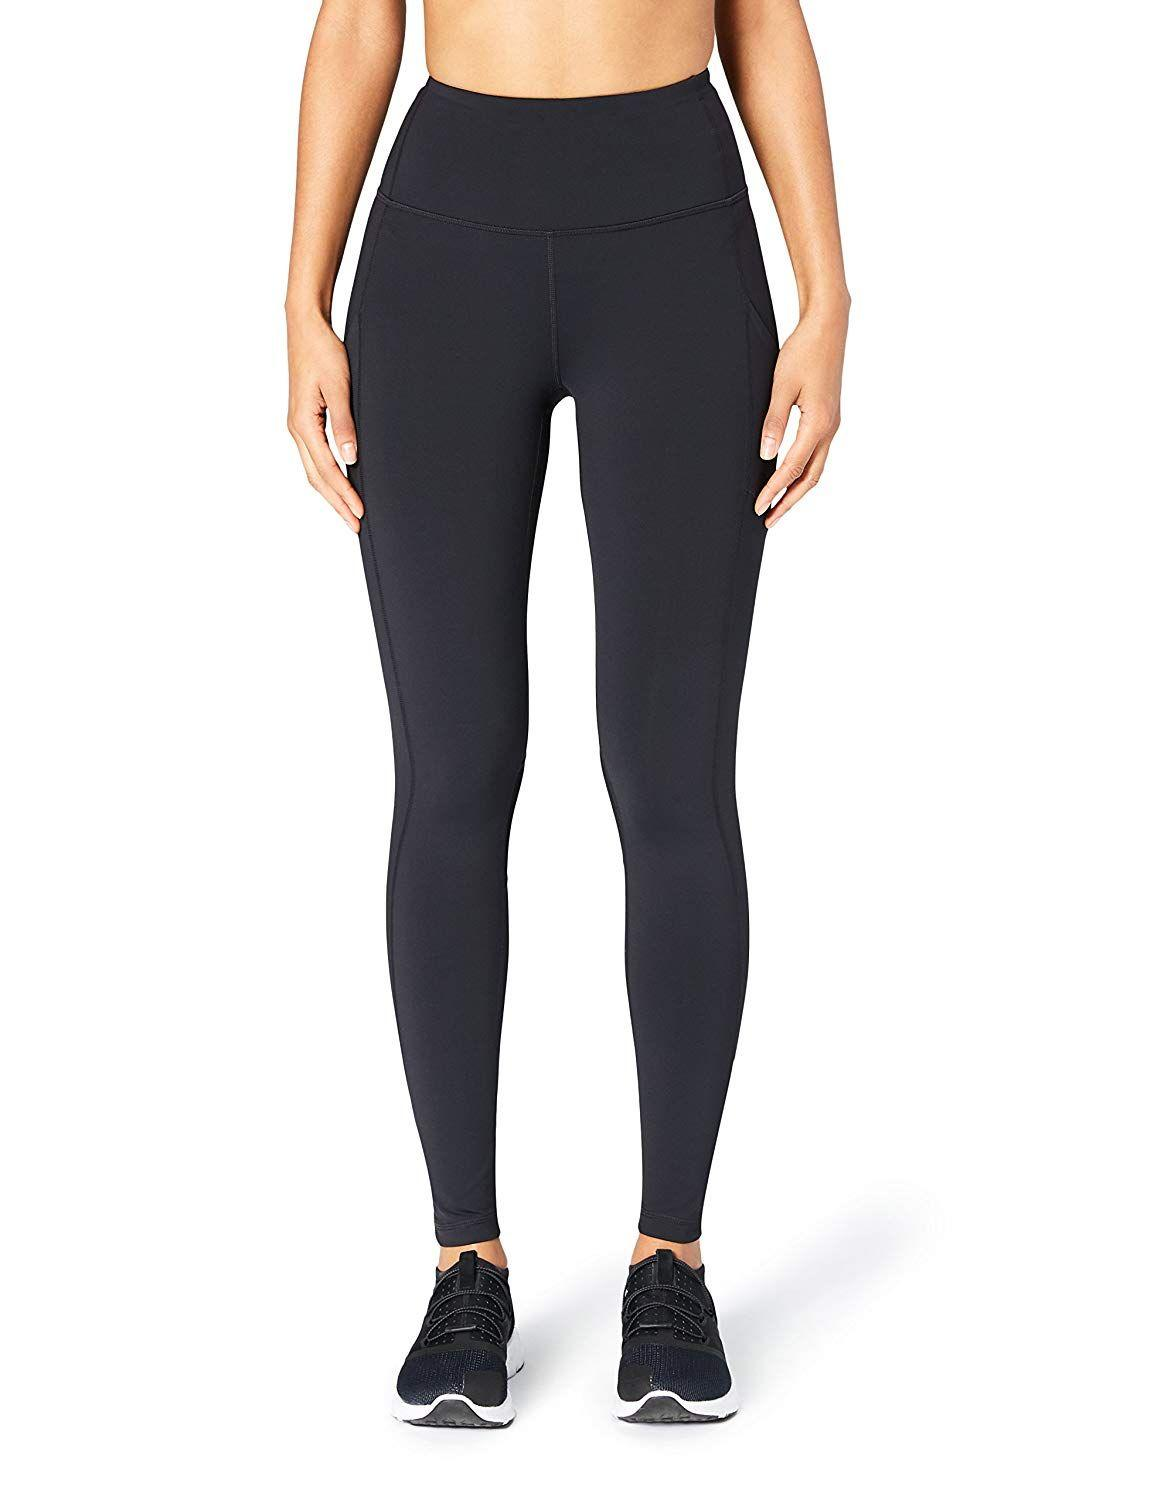 """<h3><a href=""""https://www.amazon.com/Core-10-Womens-Onstride-Legging/dp/B072F5LC87"""" rel=""""nofollow noopener"""" target=""""_blank"""" data-ylk=""""slk:Core 10 Full-Length Legging With Pockets"""" class=""""link rapid-noclick-resp"""">Core 10 Full-Length Legging With Pockets</a> </h3> <p>4.1 out of 5 stars and 75 reviews</p> <p><strong>Promising Review:</strong> According to <a href=""""https://www.amazon.com/gp/customer-reviews/RA663R5LRTHT4/"""" rel=""""nofollow noopener"""" target=""""_blank"""" data-ylk=""""slk:one reviewer"""" class=""""link rapid-noclick-resp"""">one reviewer</a>, these are the """"holy grail"""" of leggings, particularly for plus-size shoppers. And while she notes they are expensive, you can score this pair at almost half the price during Prime Day: """"It's not easy to find a pair of leggings that won't roll down during runs but I didn't have to adjust these once during my last race. The feel of these leggings was great as well. They had a degree of compression to them where I felt secure, but not so much where I felt suffocated. I wish they weren't so expensive, but they are definitely quality leggings and I will probably be ordering more.""""</p> <br> <br> <strong>Core 10</strong> Core 10 Women's (XS-3X), $34.3, available at <a href=""""https://www.amazon.com/Core-10-Womens-Onstride-Legging/dp/B071NQ9B8Z"""" rel=""""nofollow noopener"""" target=""""_blank"""" data-ylk=""""slk:Amazon"""" class=""""link rapid-noclick-resp"""">Amazon</a>"""